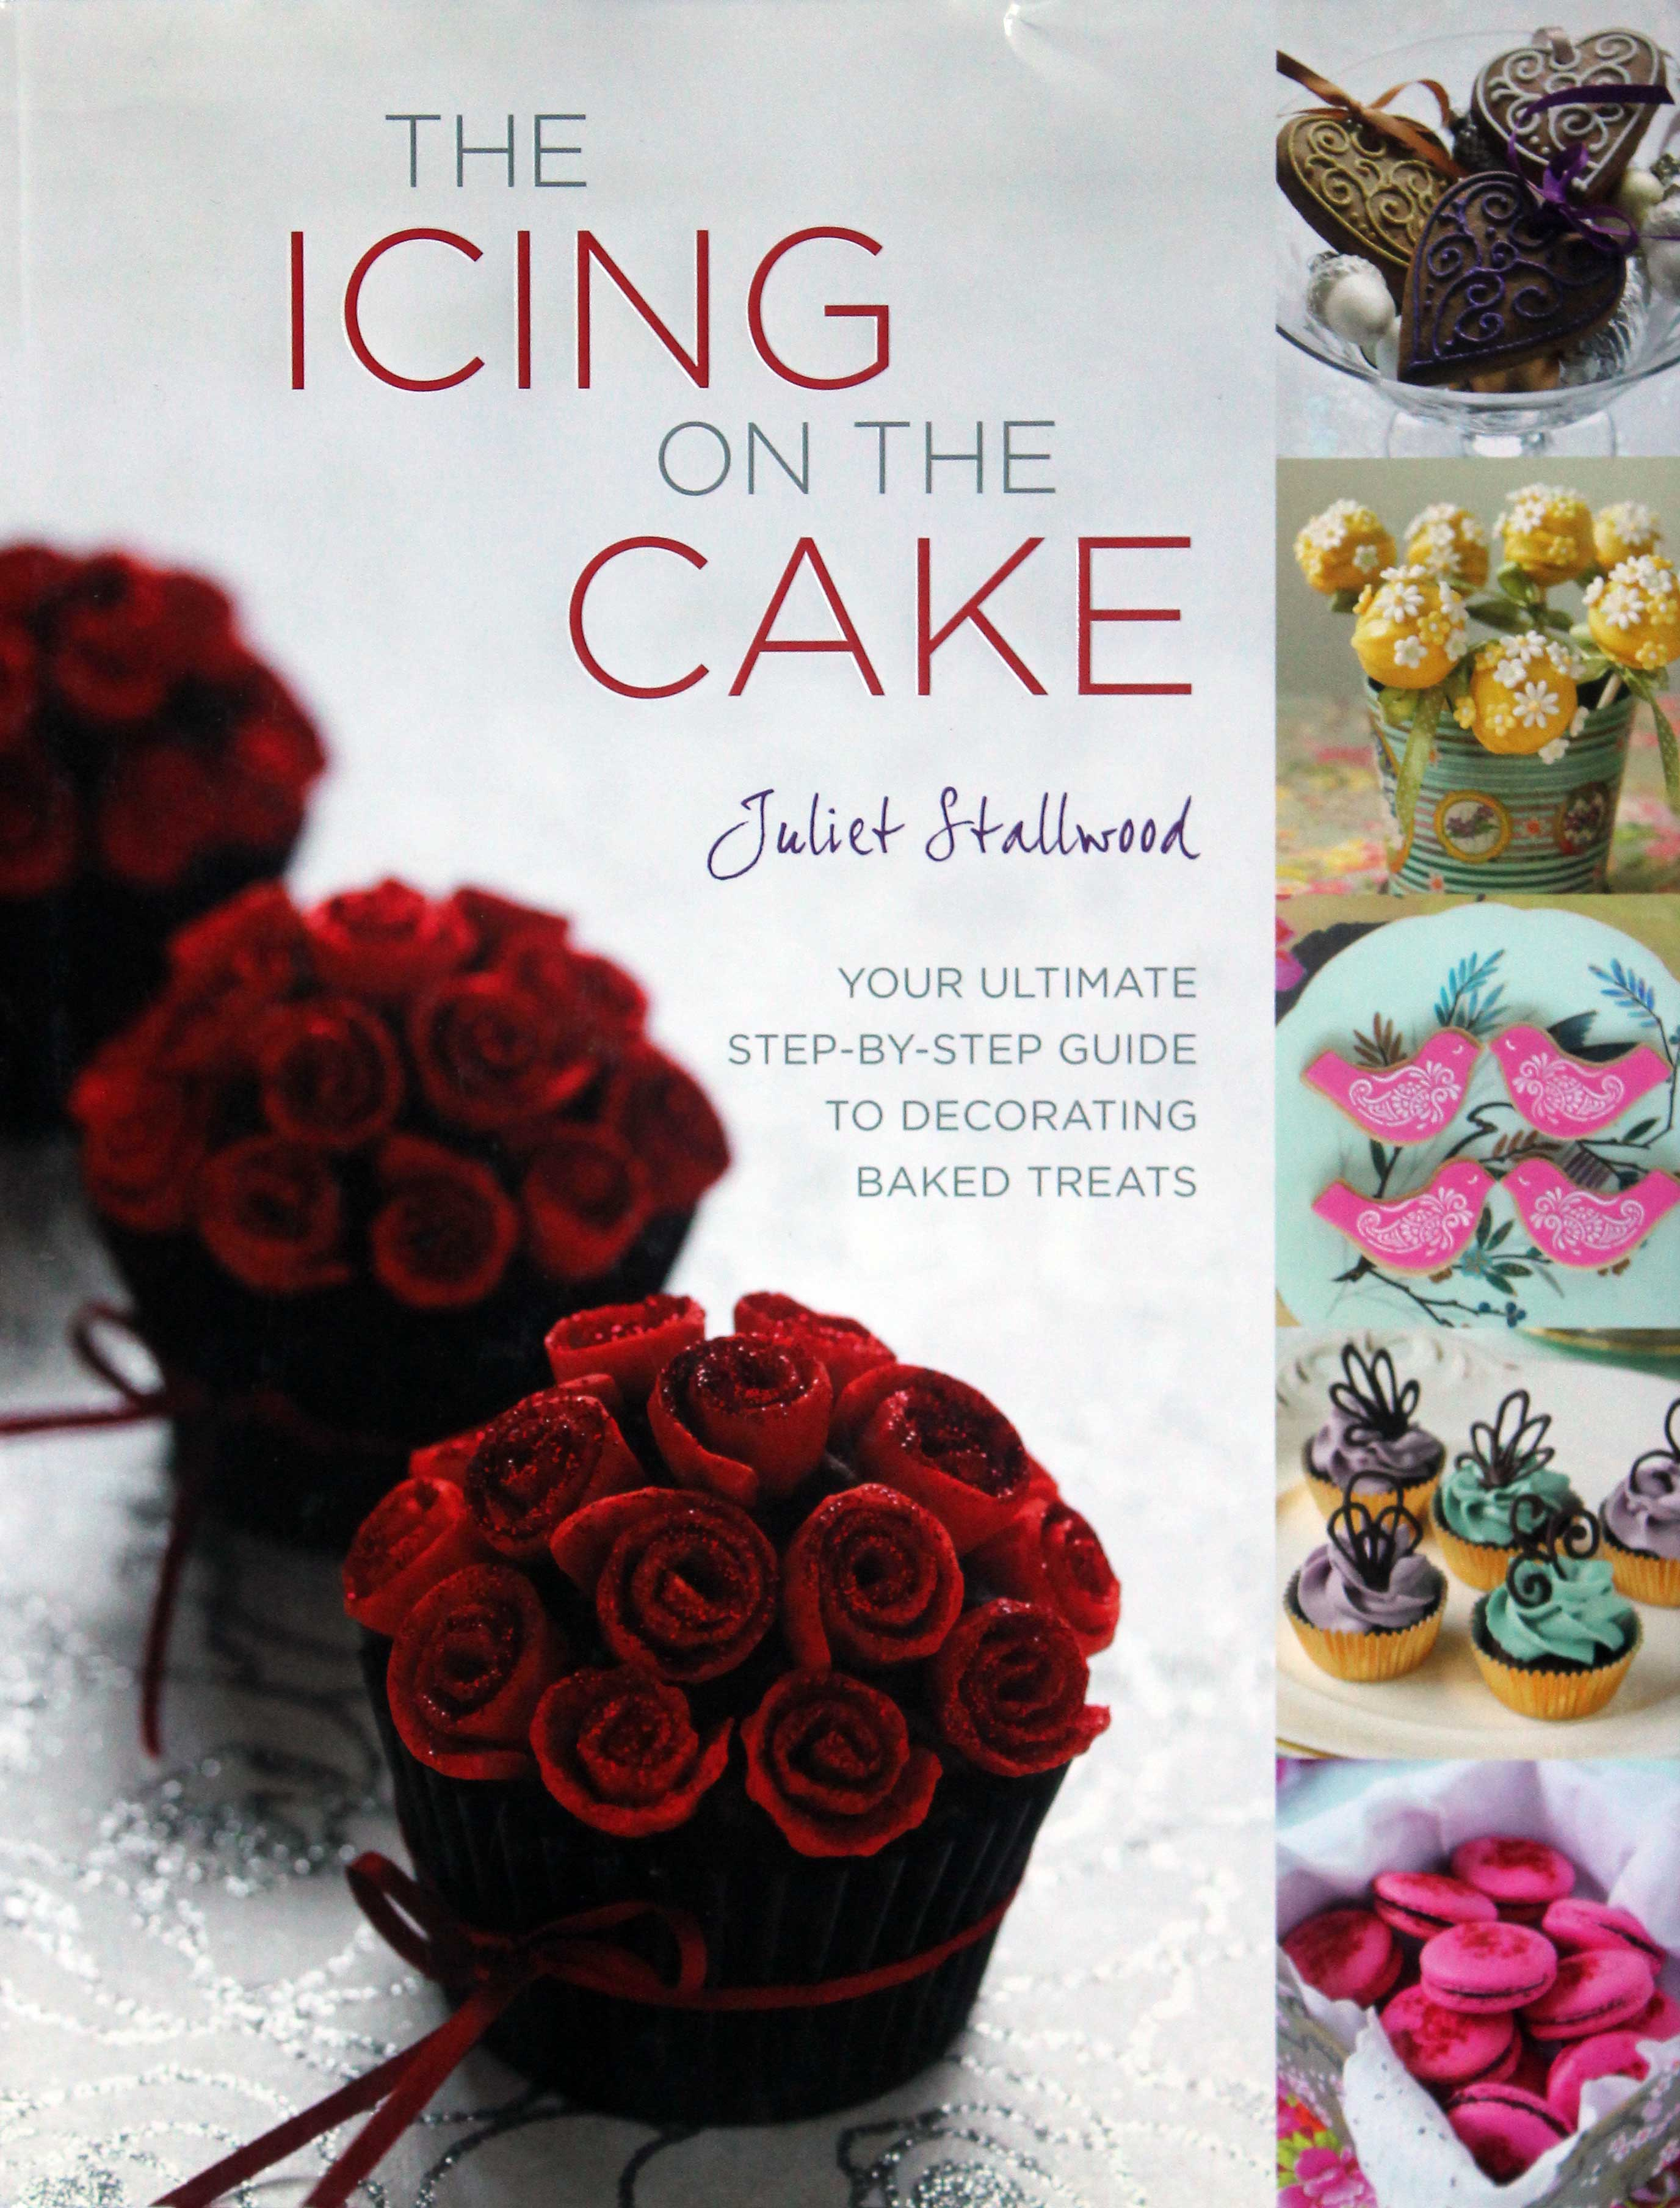 Best of Cookbook Reviews: The Icing on the Cake